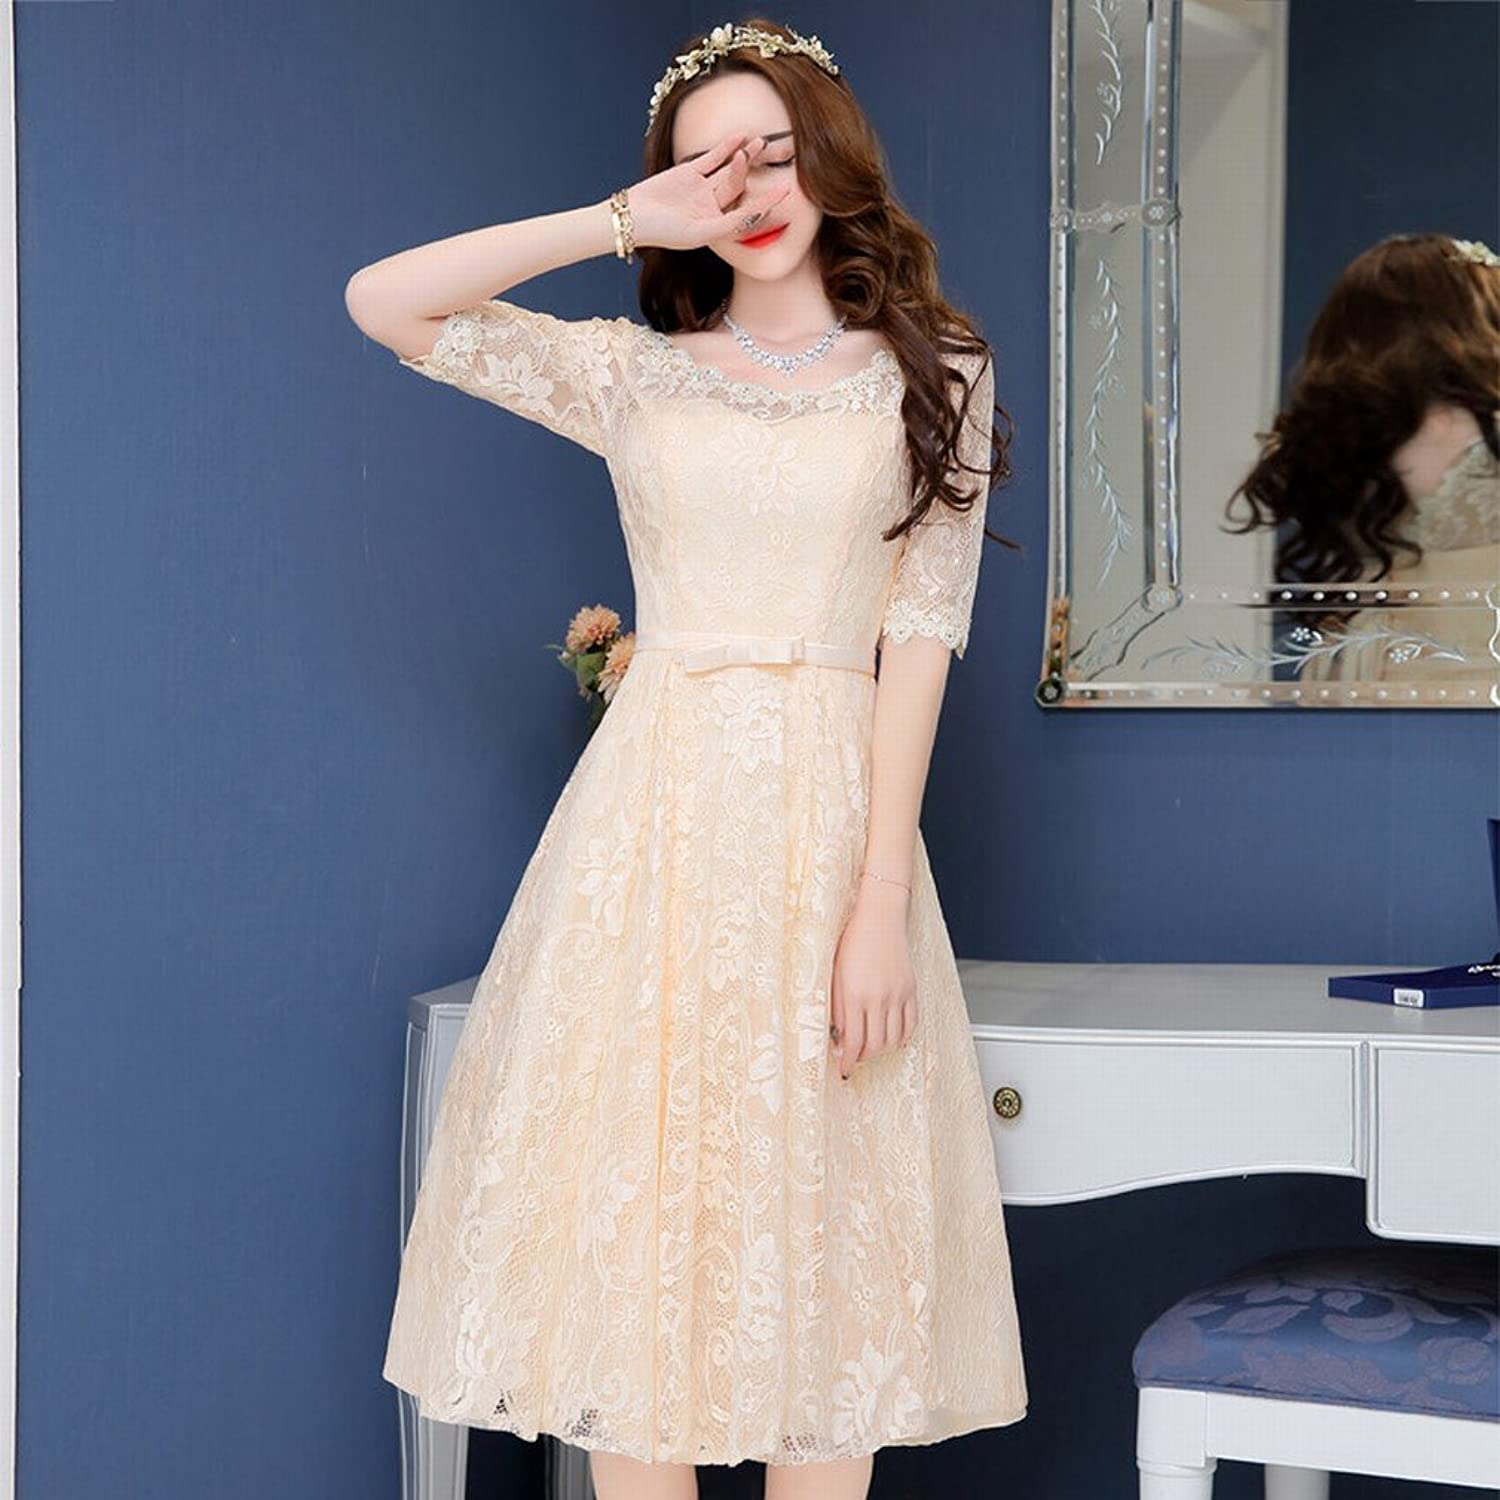 DHG Modern Bride Dress in The Long Section of Lace Round Neck Sleeve Dress Dress Dress Wedding Dress